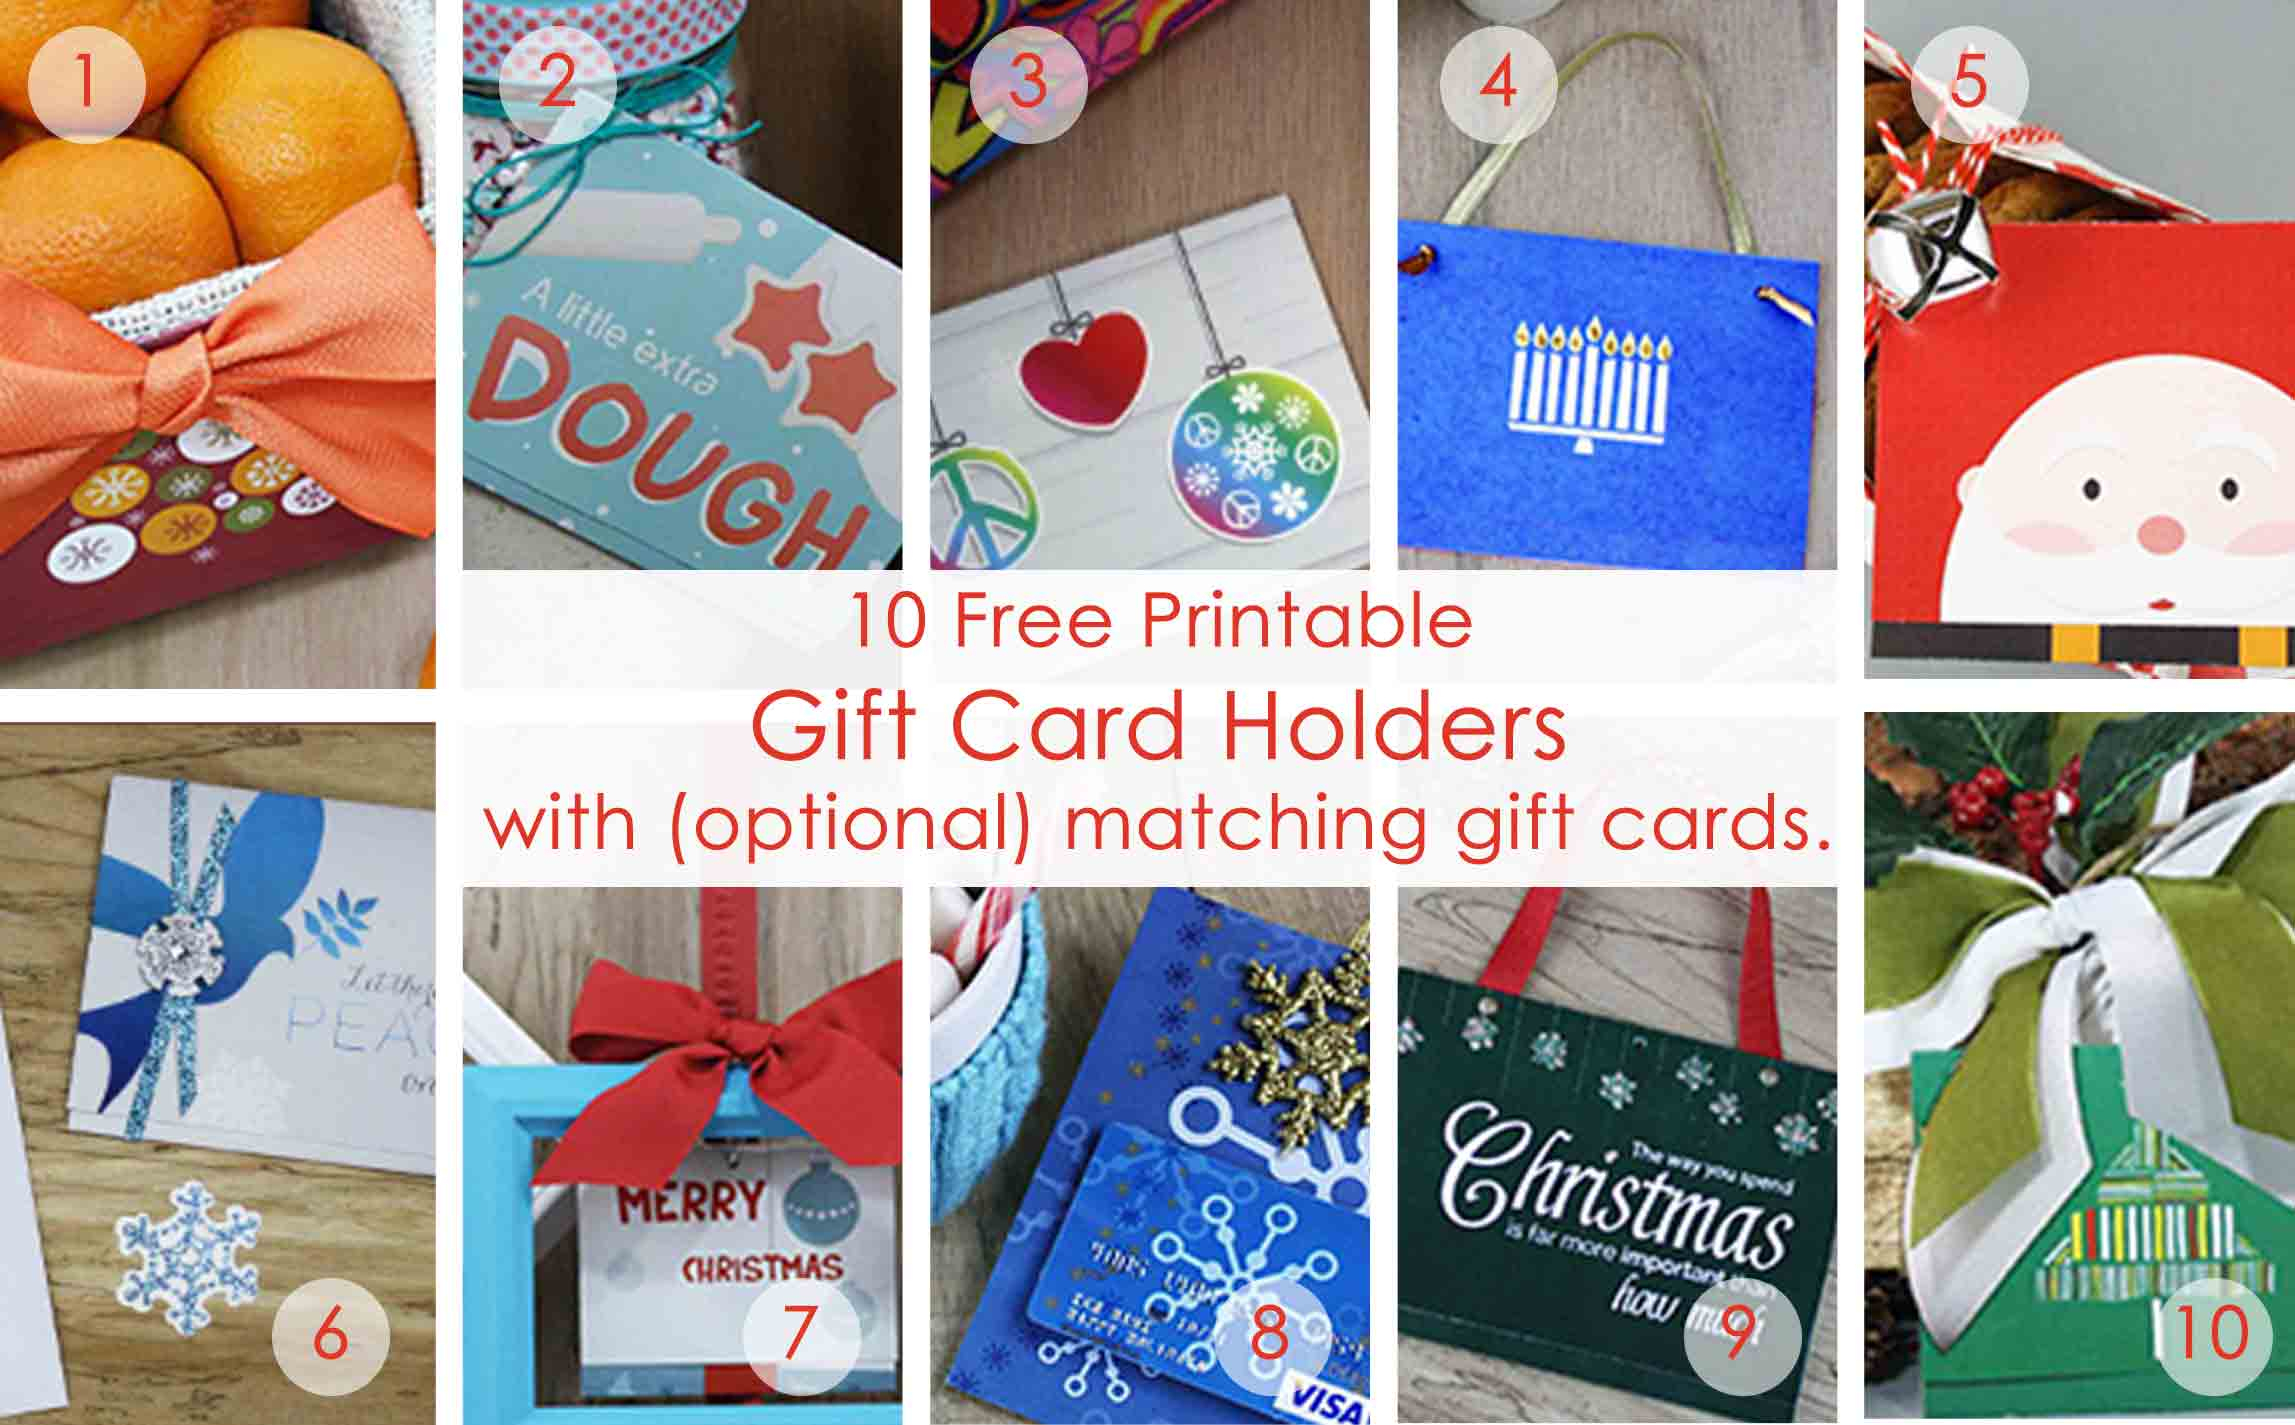 Over 50 Printable Gift Card Holders For The Holidays | Gcg - Free Printable Christmas Gift Cards